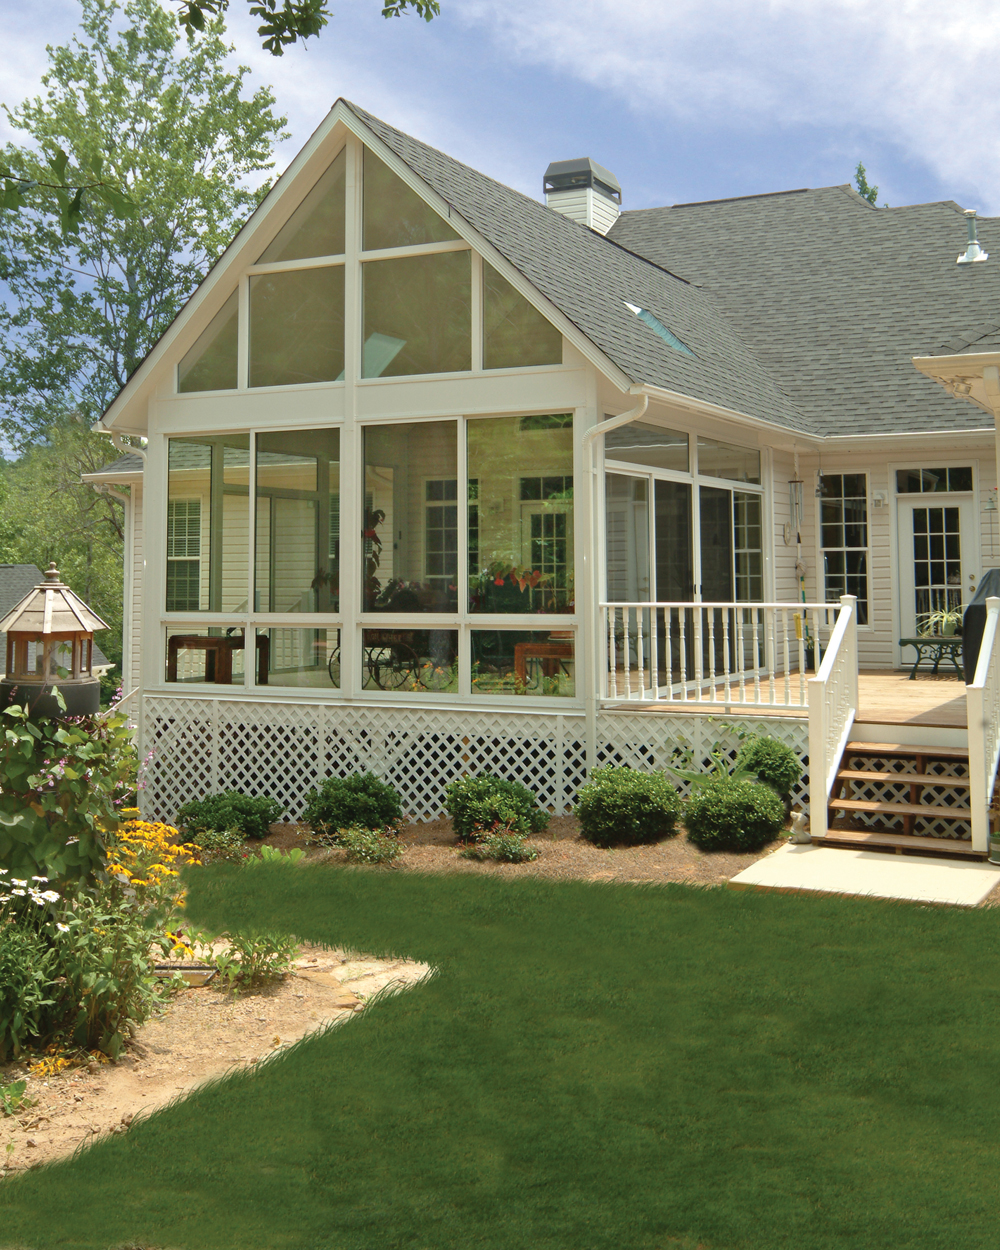 Patio enclosures inc provides five lessons for building for Sun porch ideas